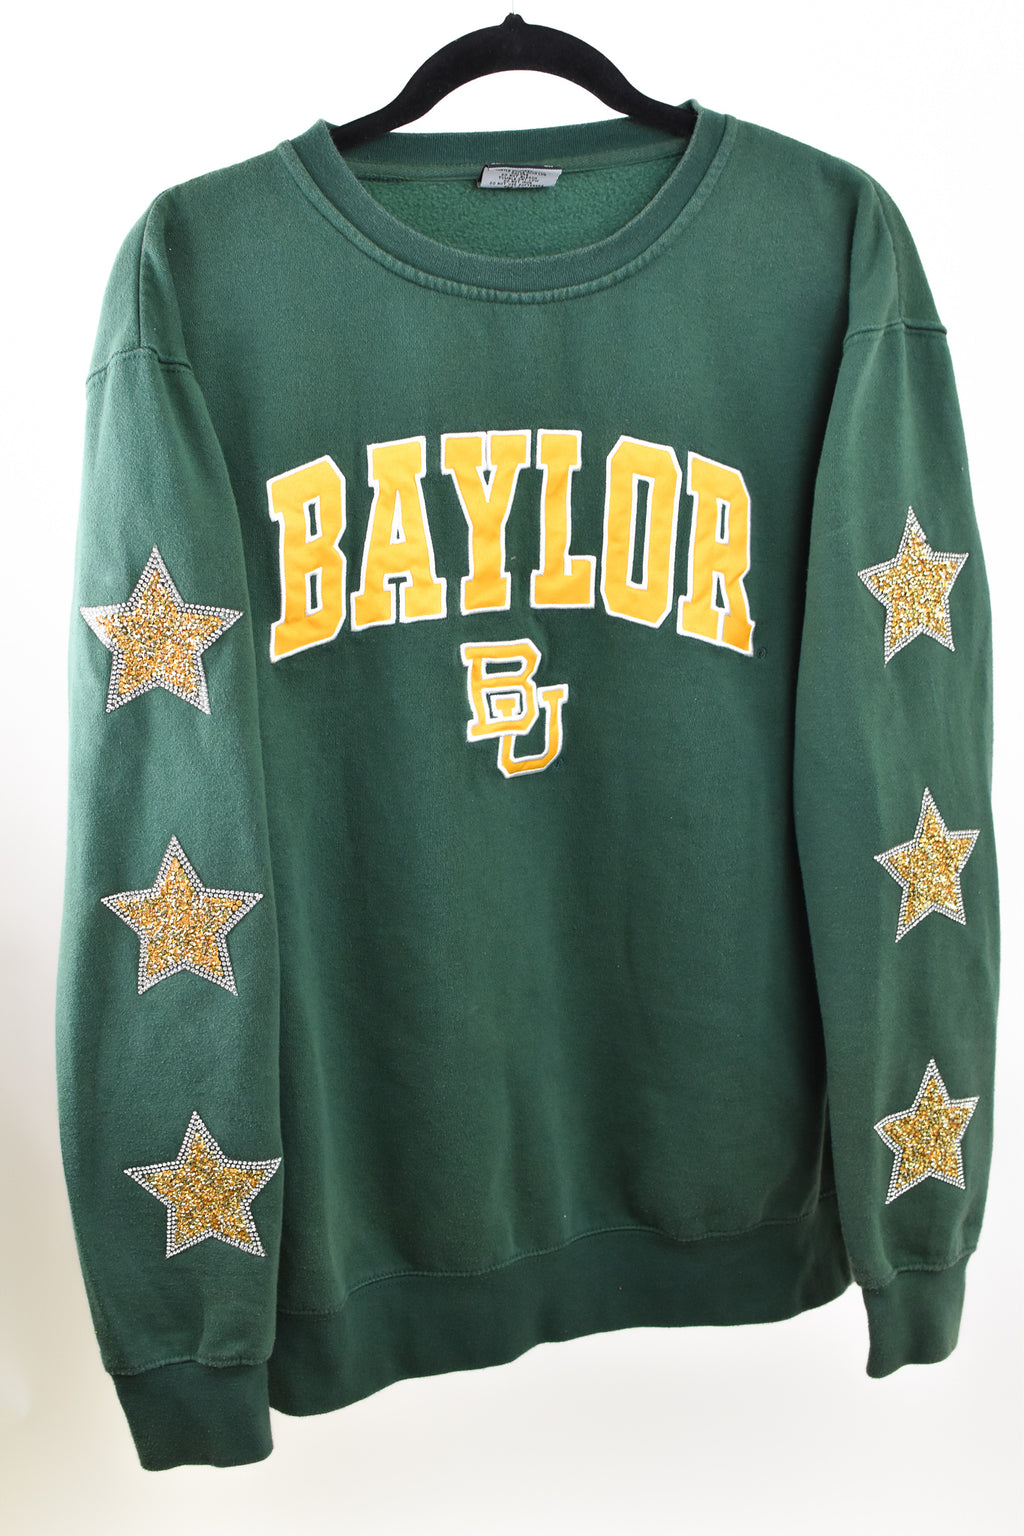 Upcycled VINTAGE Baylor University Star Rhinestone Sweatshirt